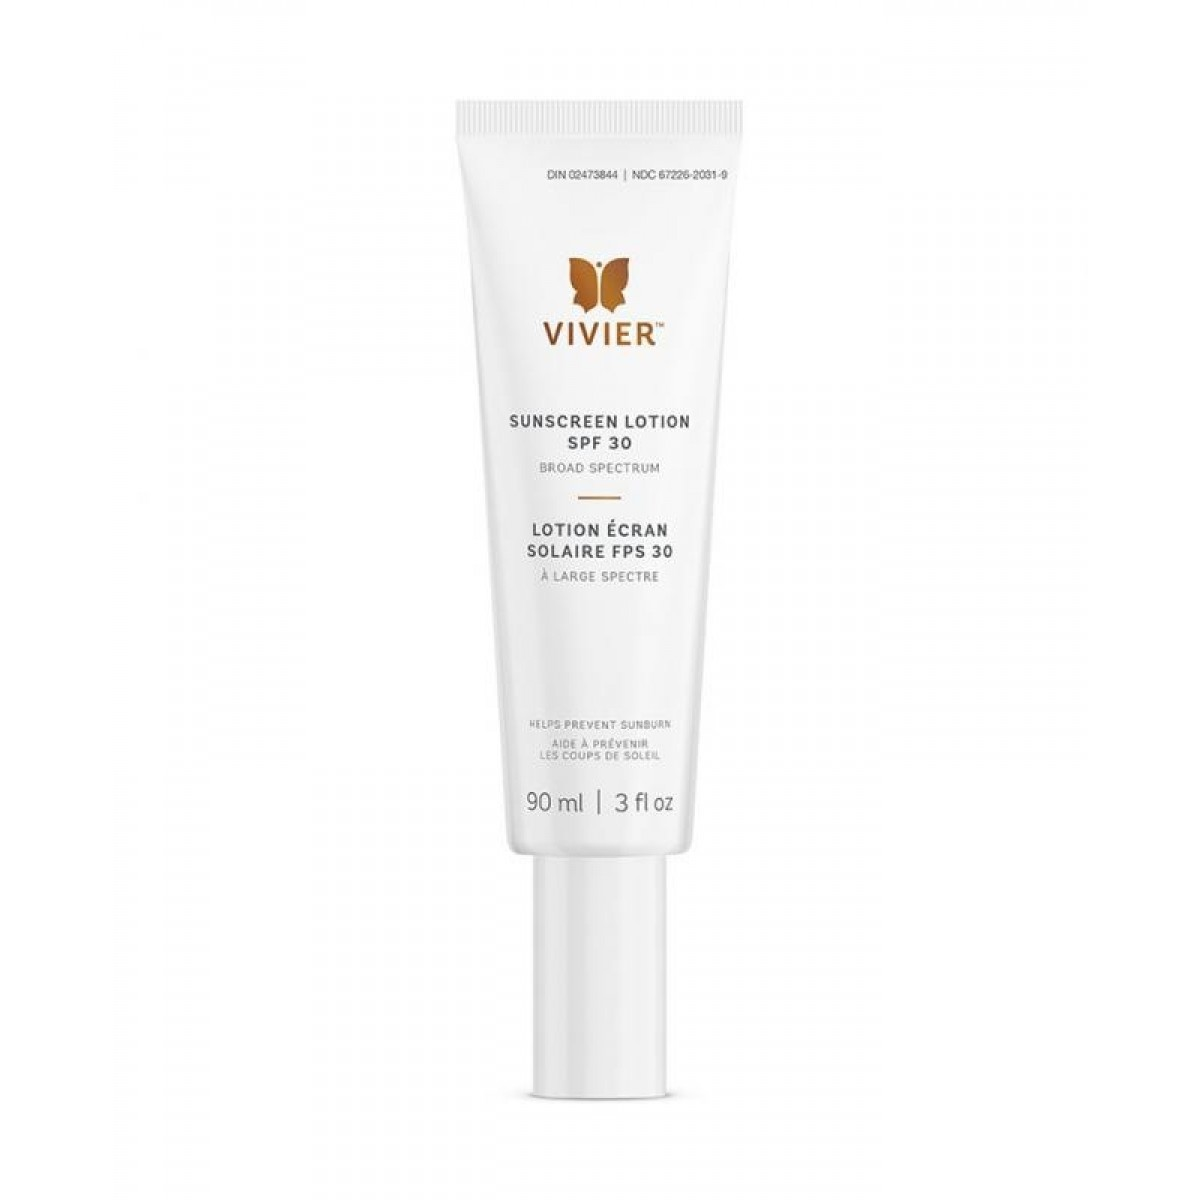 Vivier Sunscreen Lotion SPF30